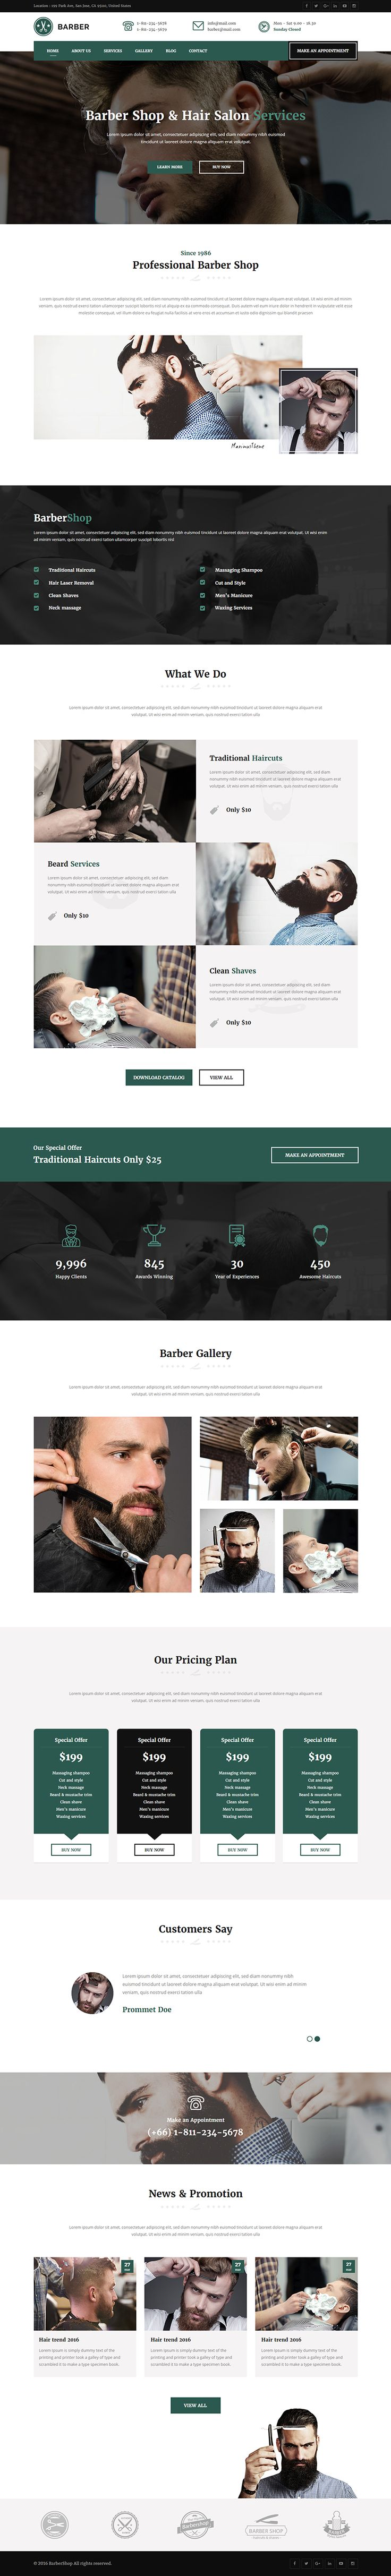 This theme can be used for barber shop, hair salon, tattoo design, haircut, hair design and fashion. This theme is perfect for any other categories as well. The template is based on modern and clean layout